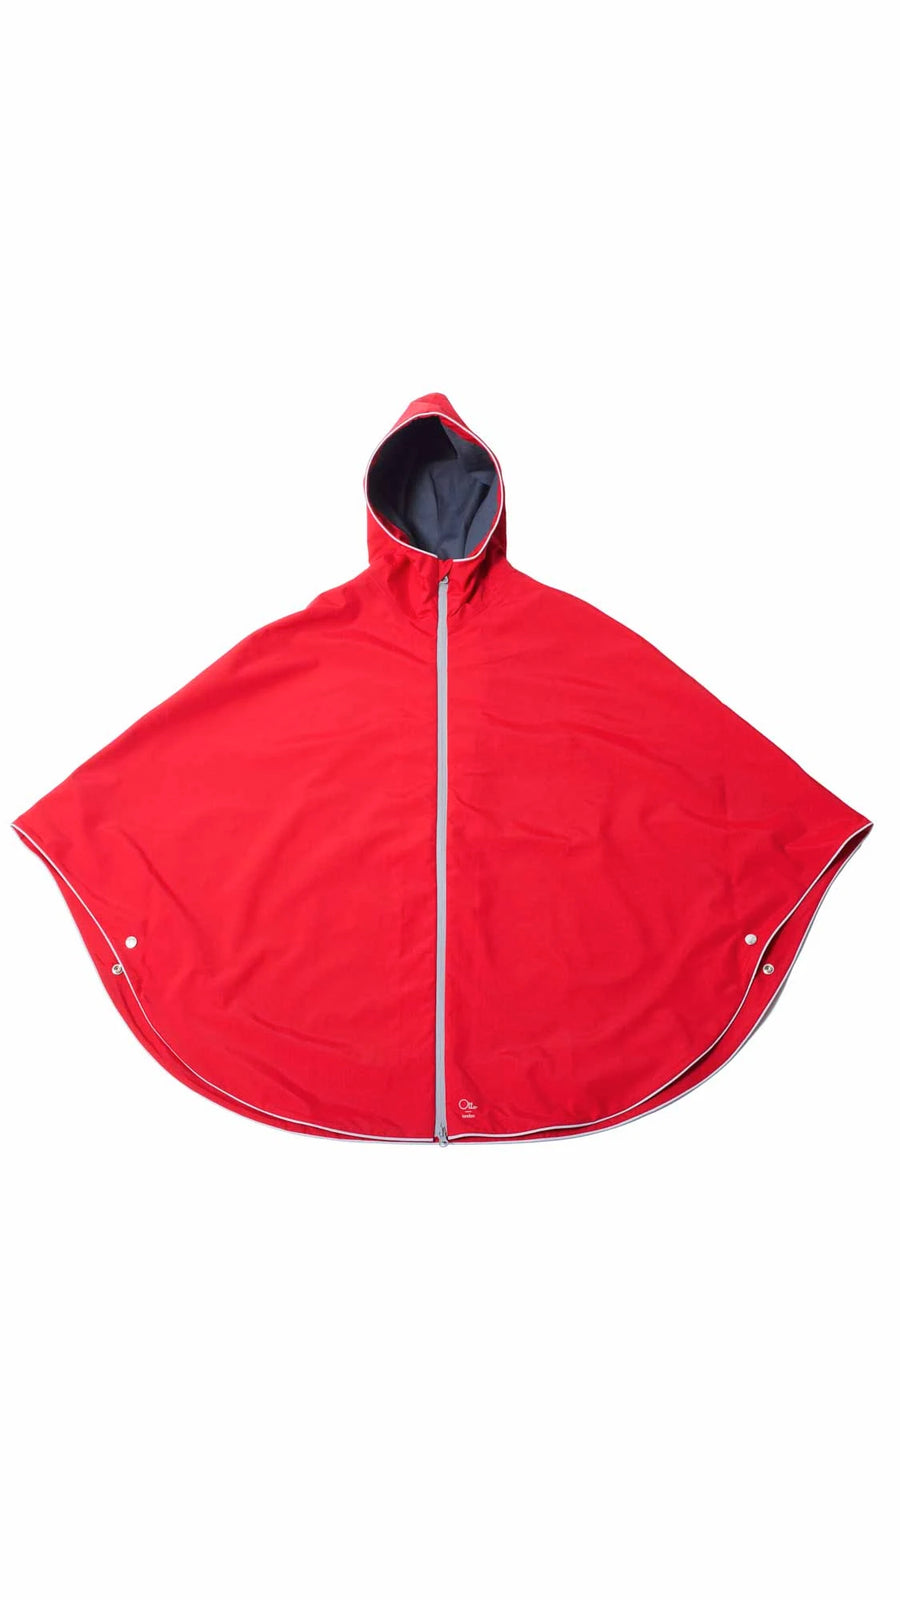 CYCLING RAIN CAPE - BRIGHT RED PONCHO